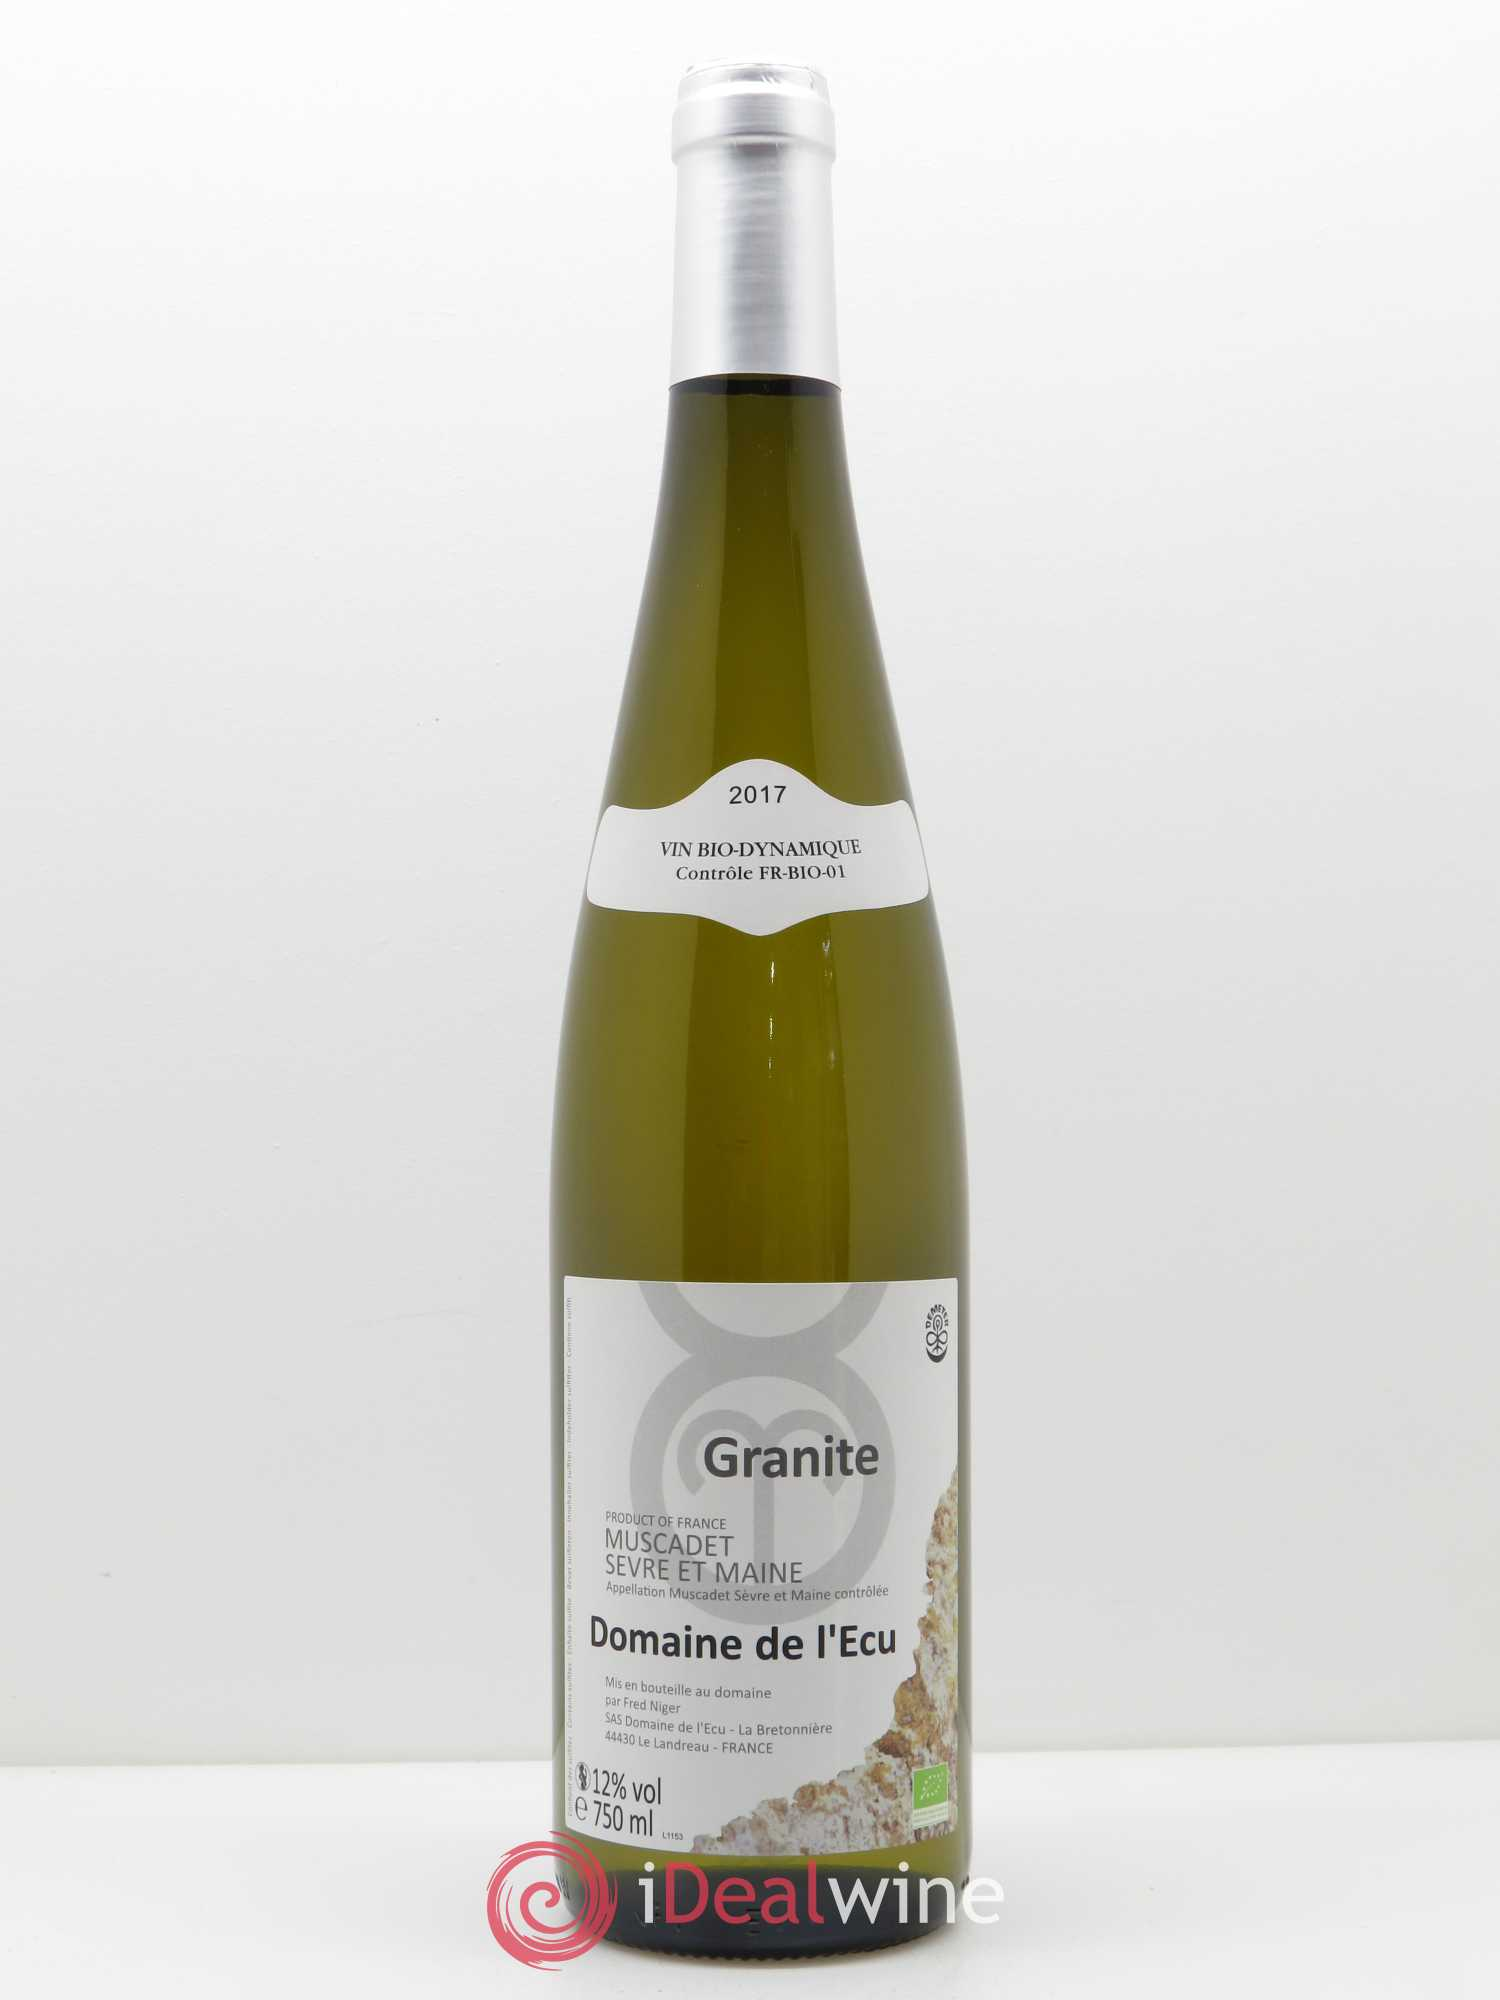 Muscadet-Sèvre-et-Maine Expression de Granite L'Ecu (Domaine de)  2017 - Lot of 1 Bottle